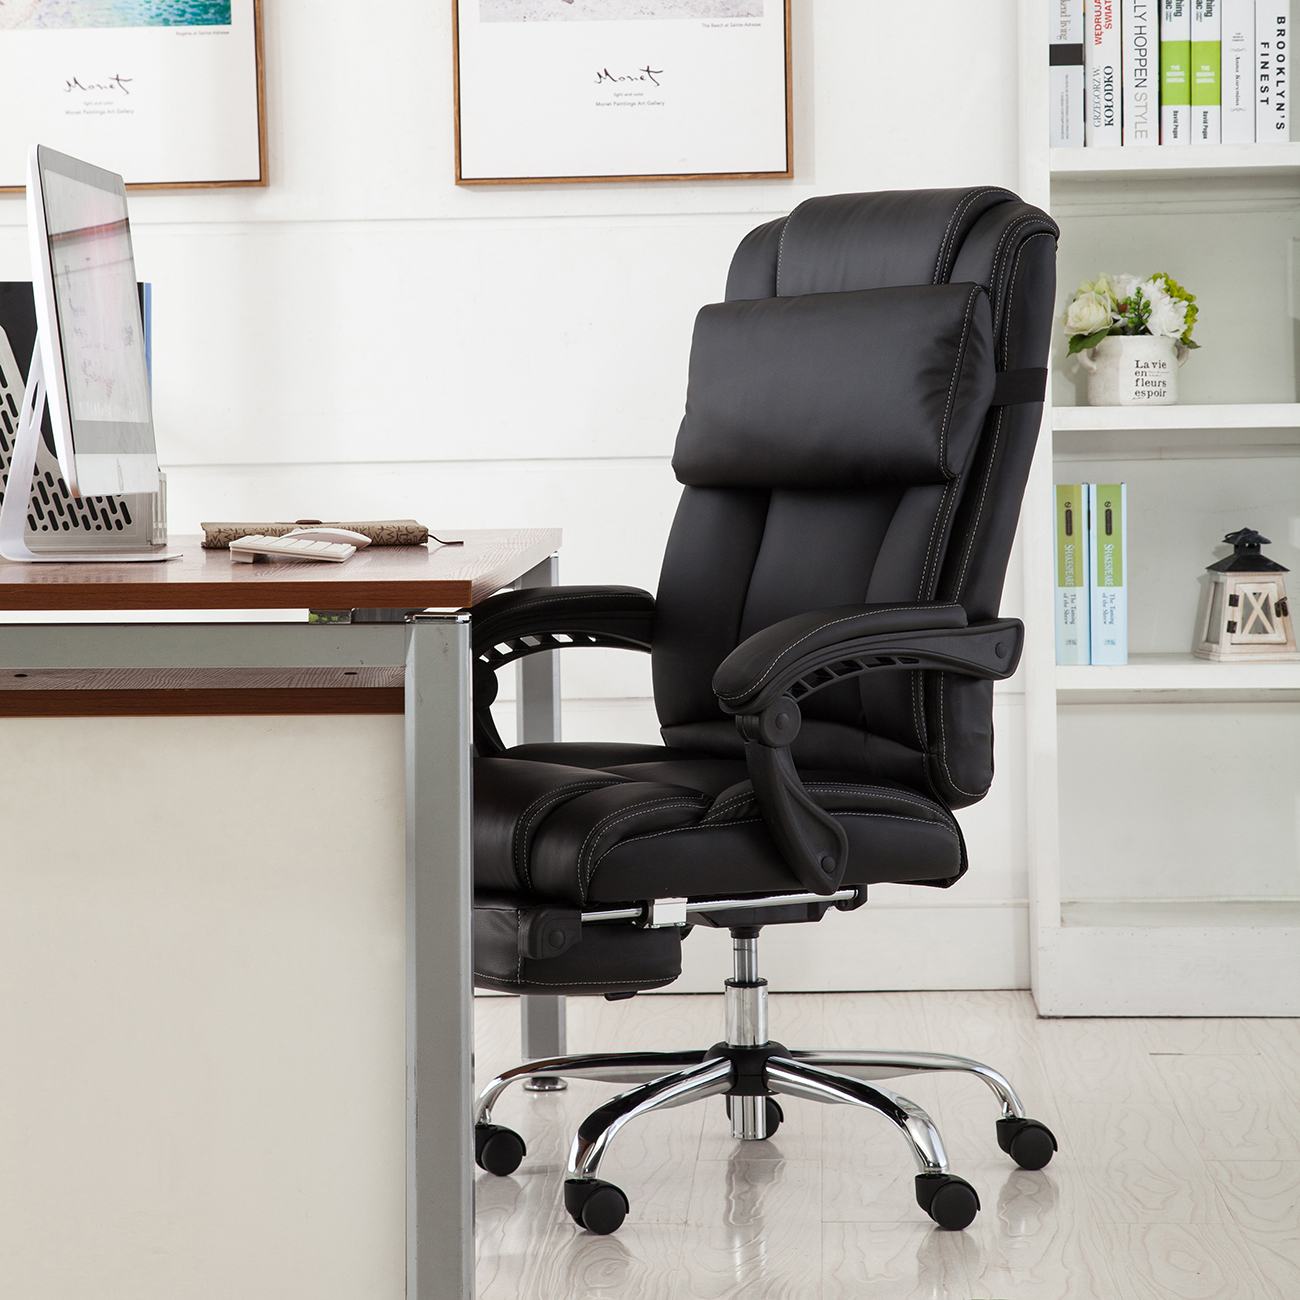 reclining office chair with footrest india swivel subnautica executive ergonomic high back